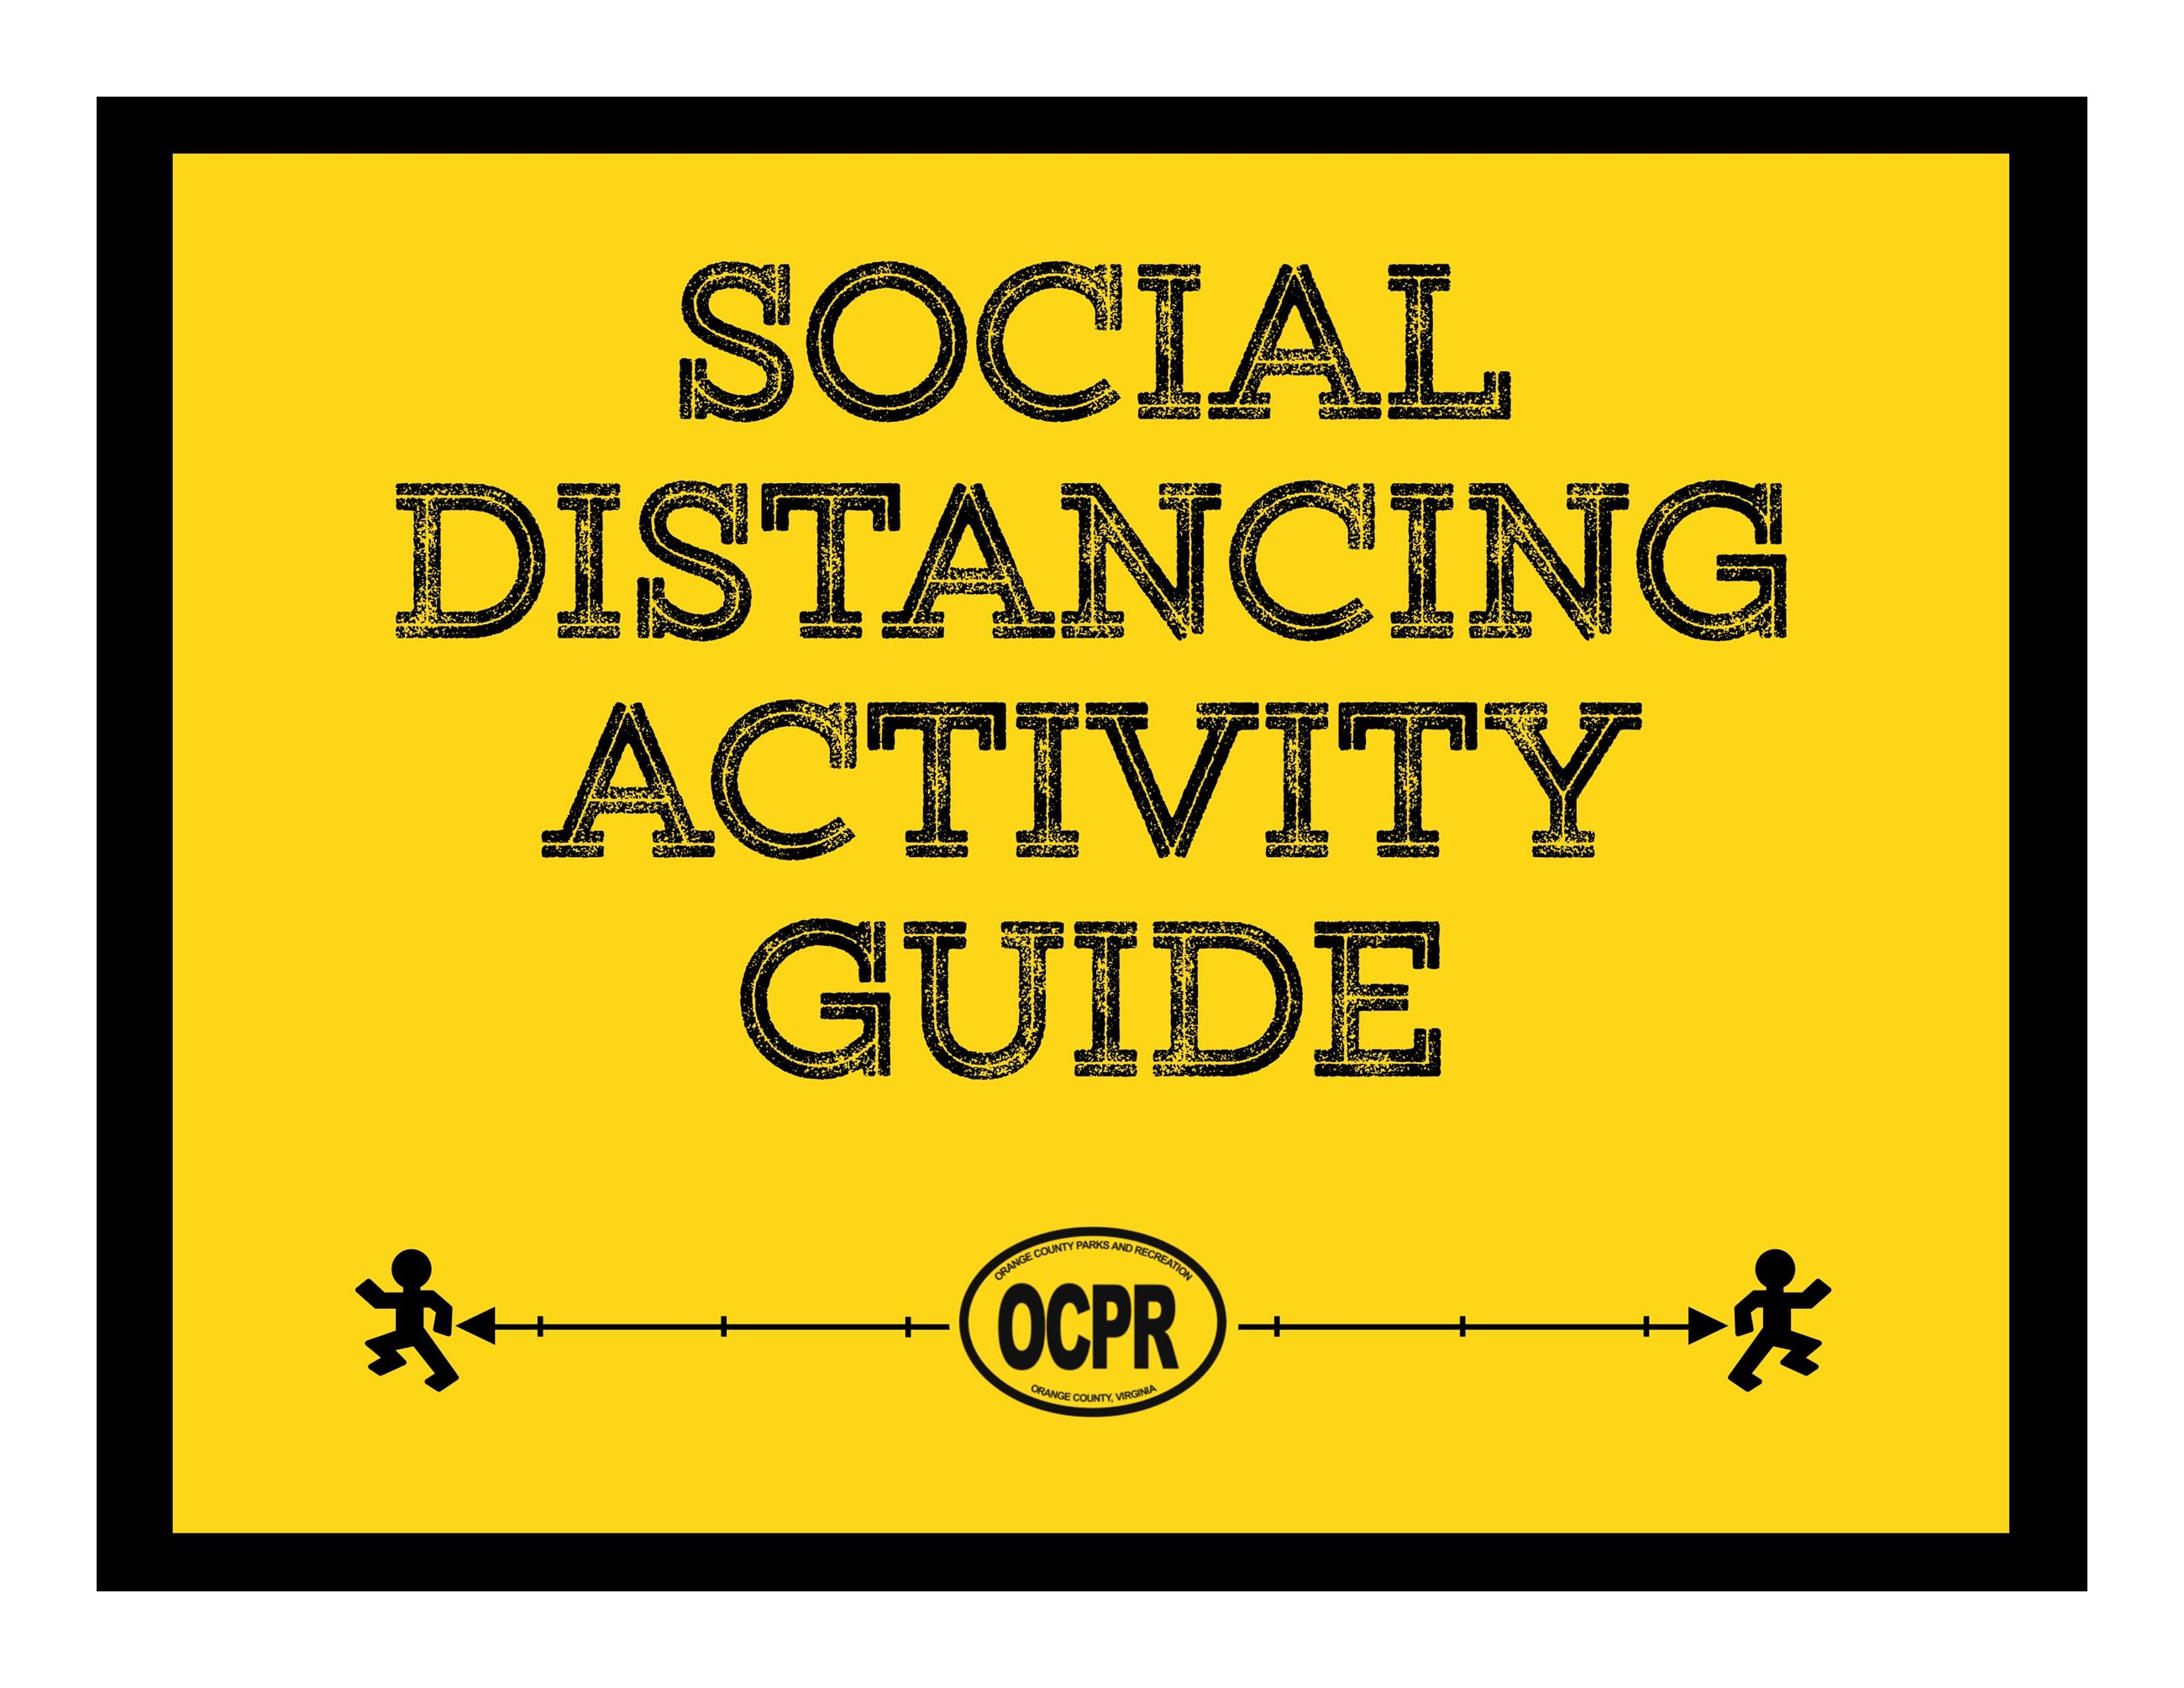 Social Distancing Activity Guide